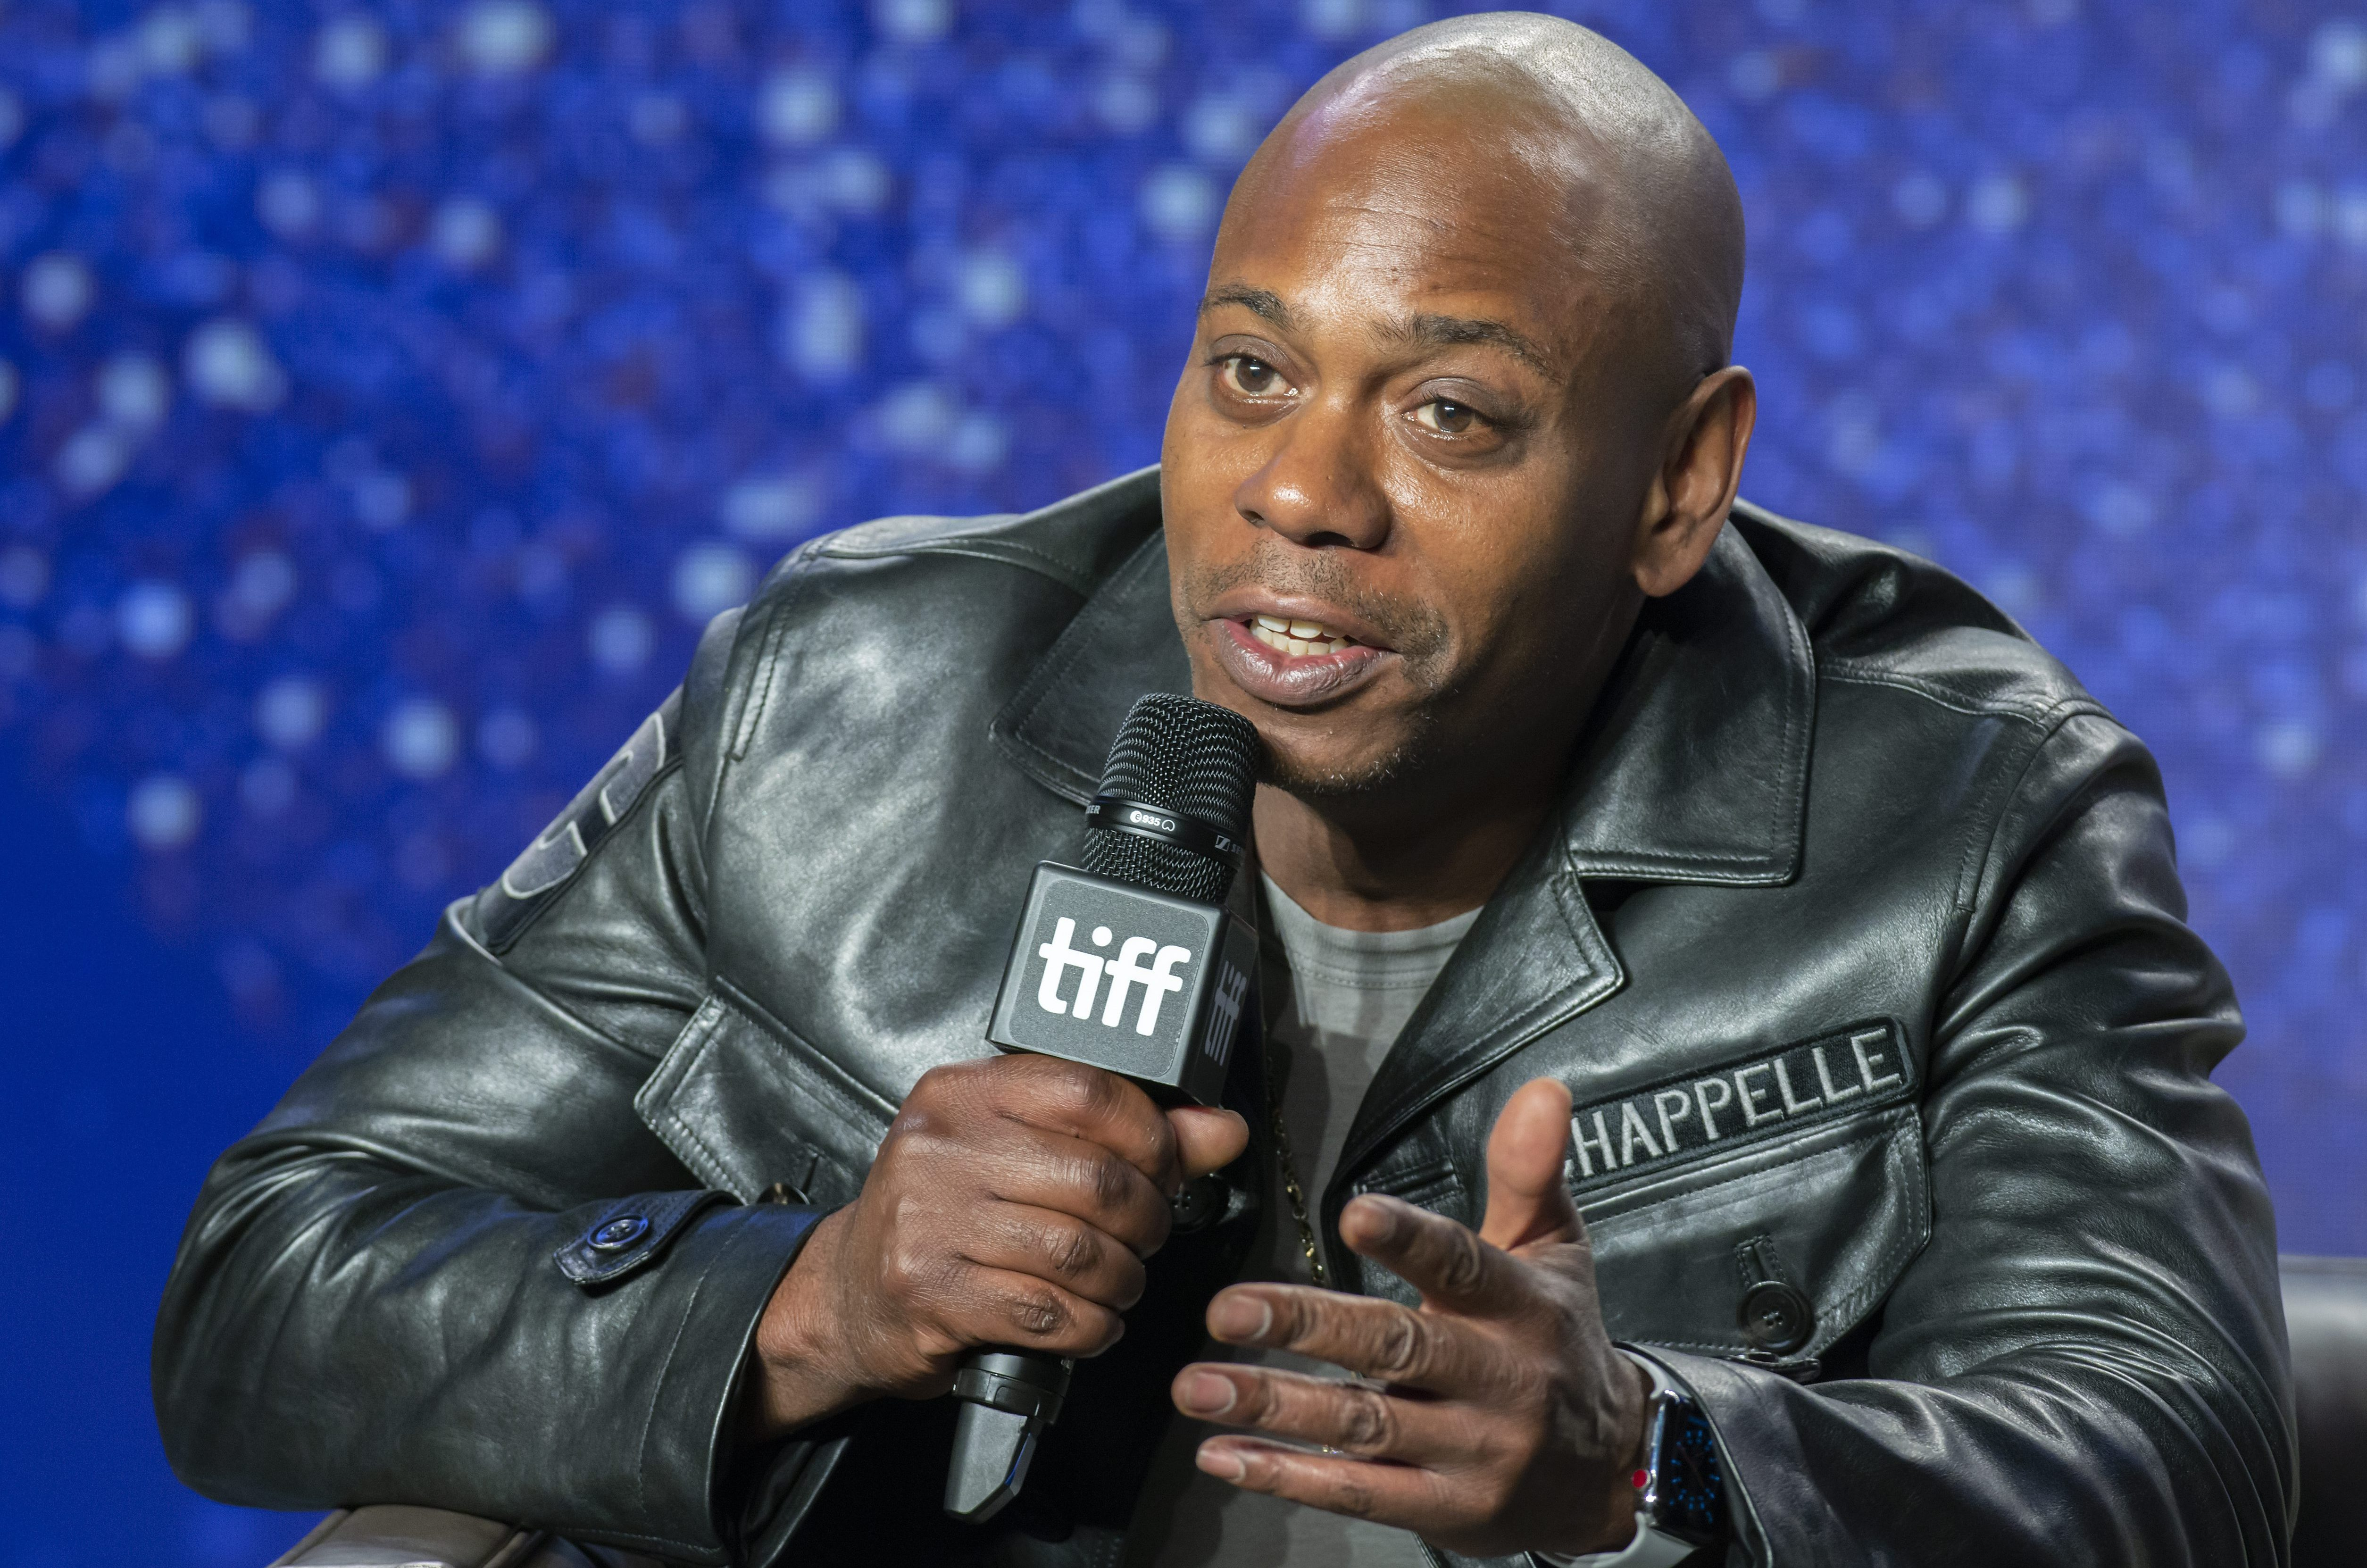 dave chappelle praises netflix for taking down episodes of chappelle s show etcanada com et canada